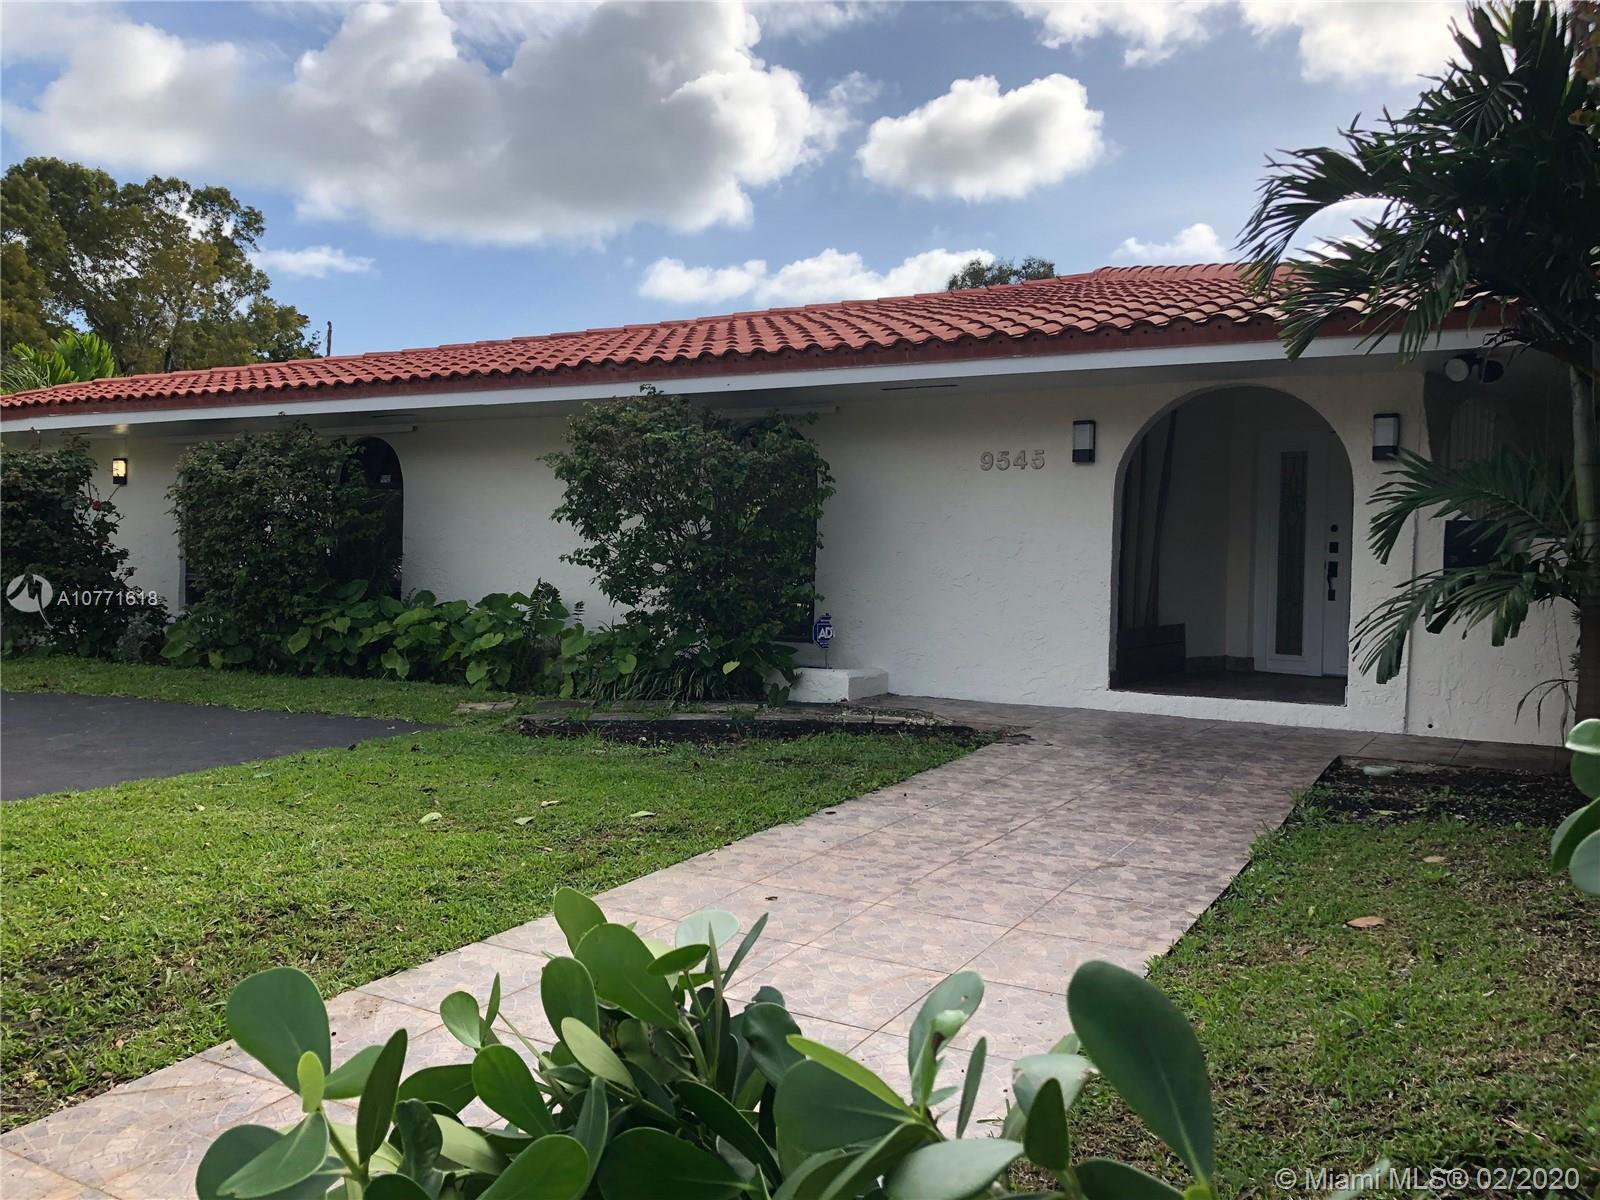 East of Biscayne! On the corner of Biscayne Blvd! Spacious pool home has it all! Three large bedroom